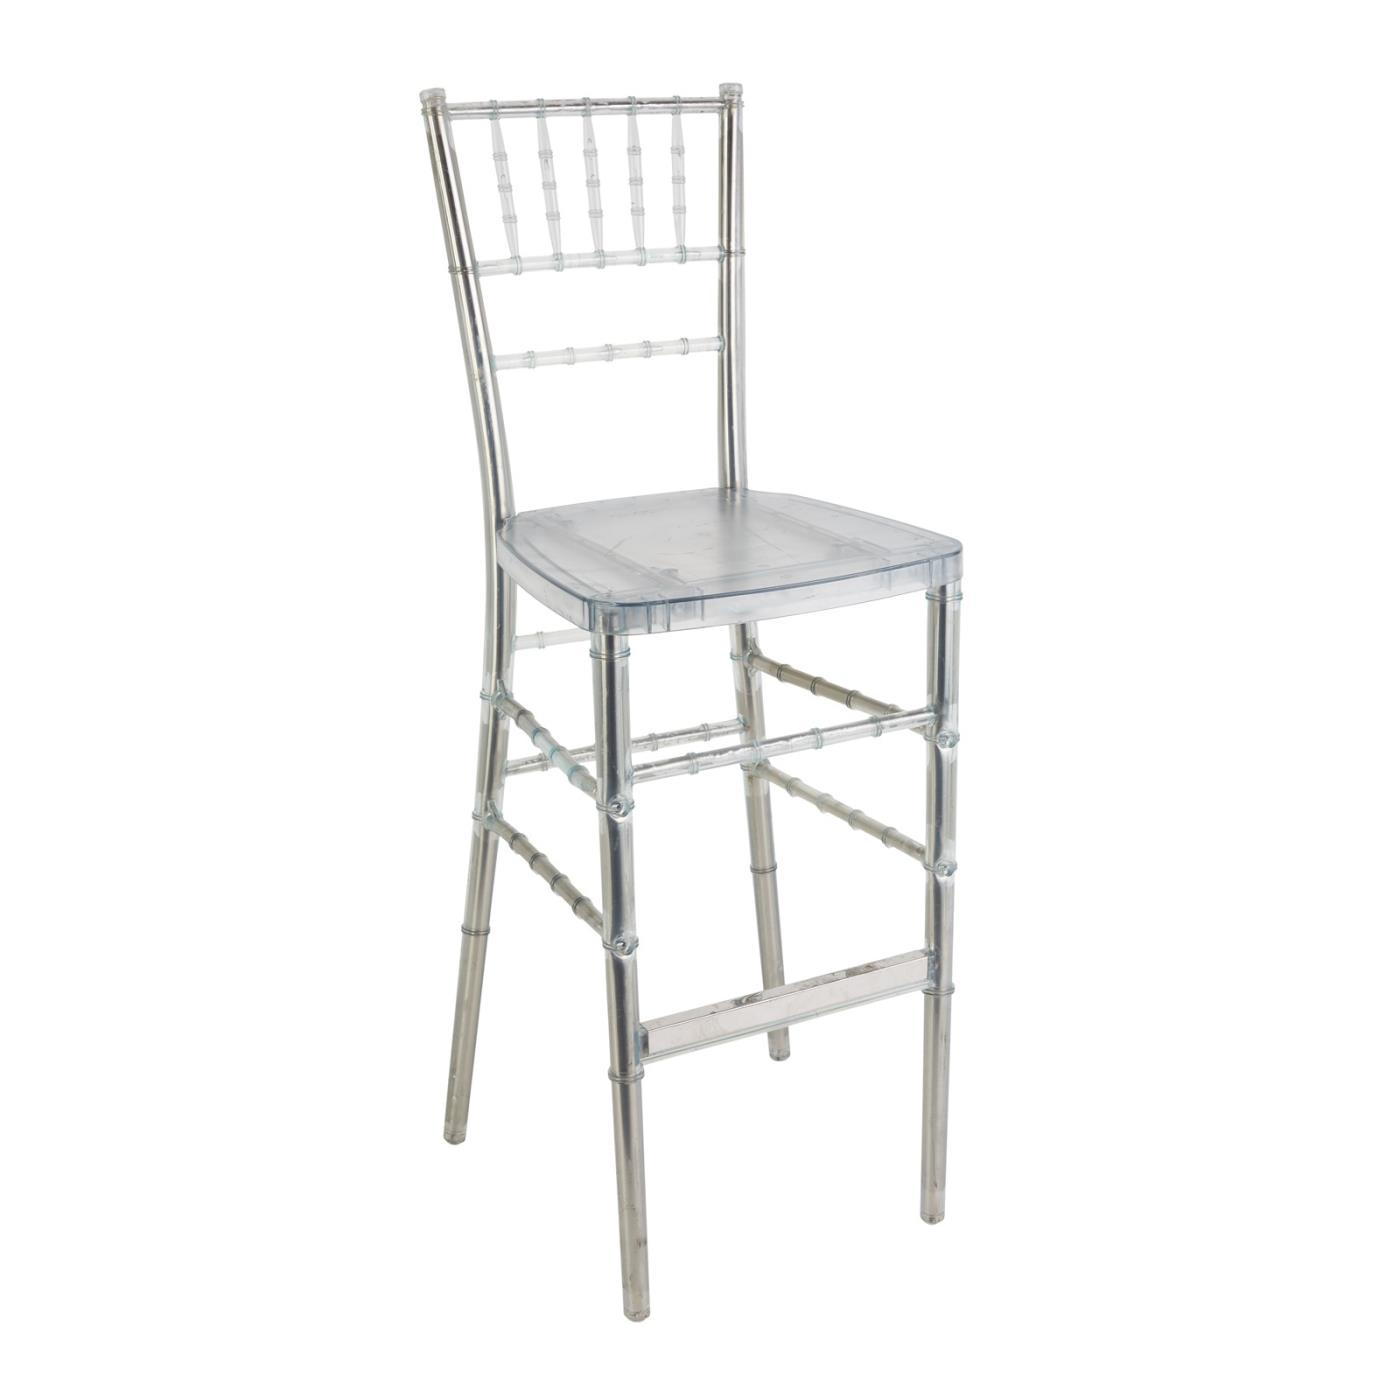 Reception Stool - Clear